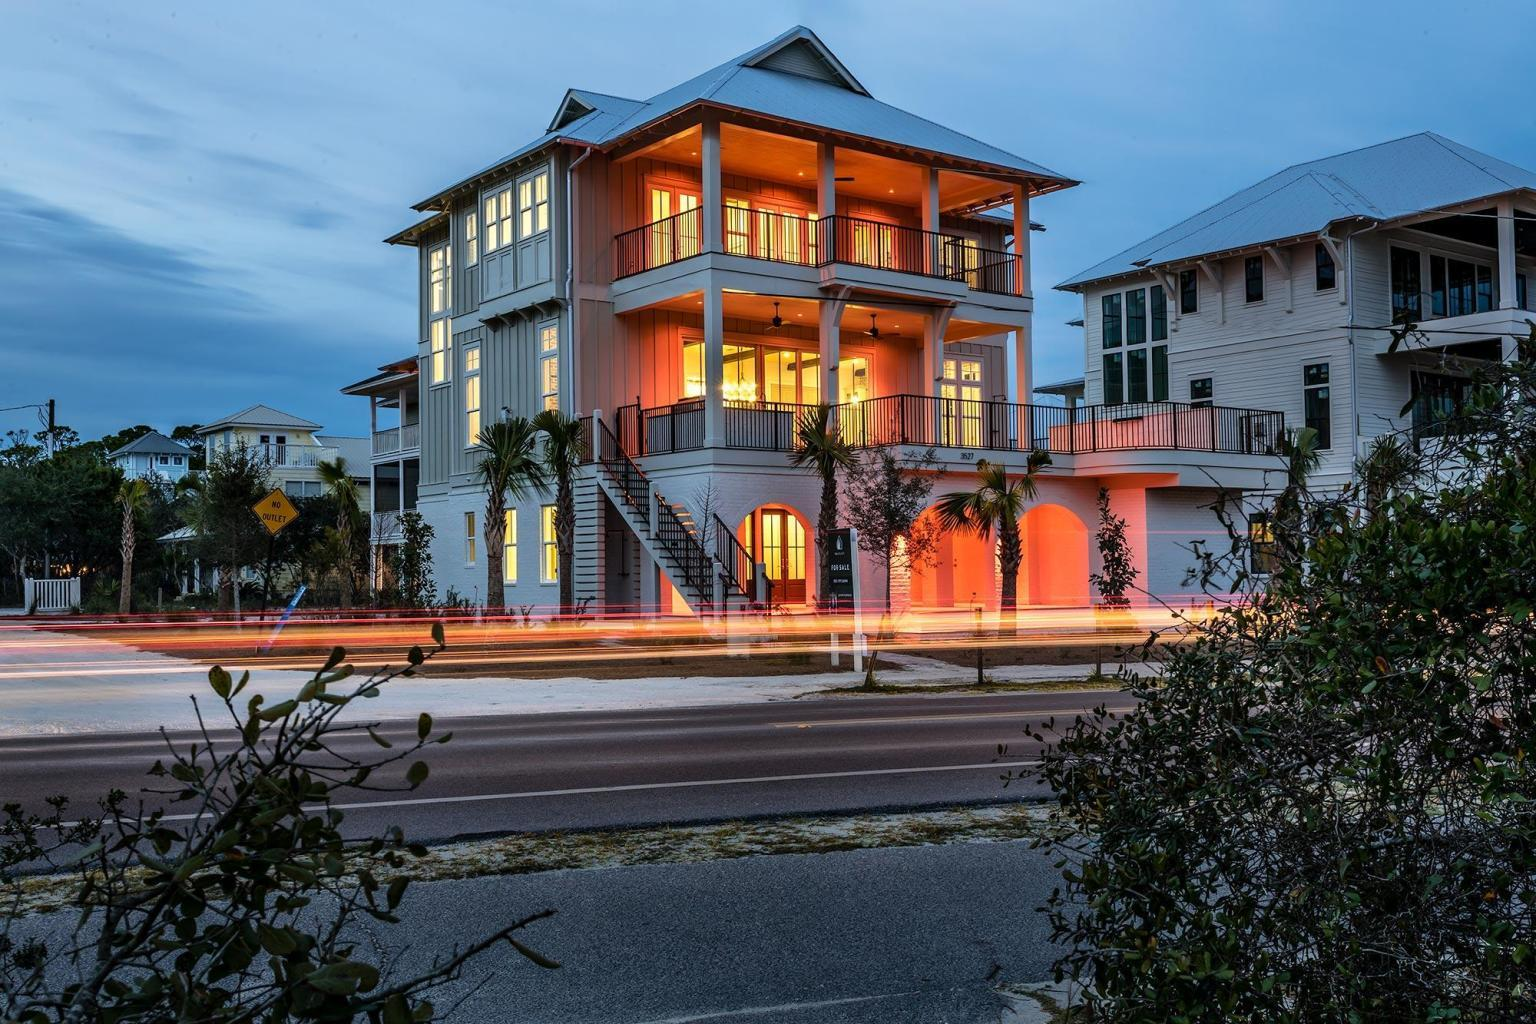 Sweeping views of the Gulf of Mexico combined with astonishing architecture exemplify this incredibl